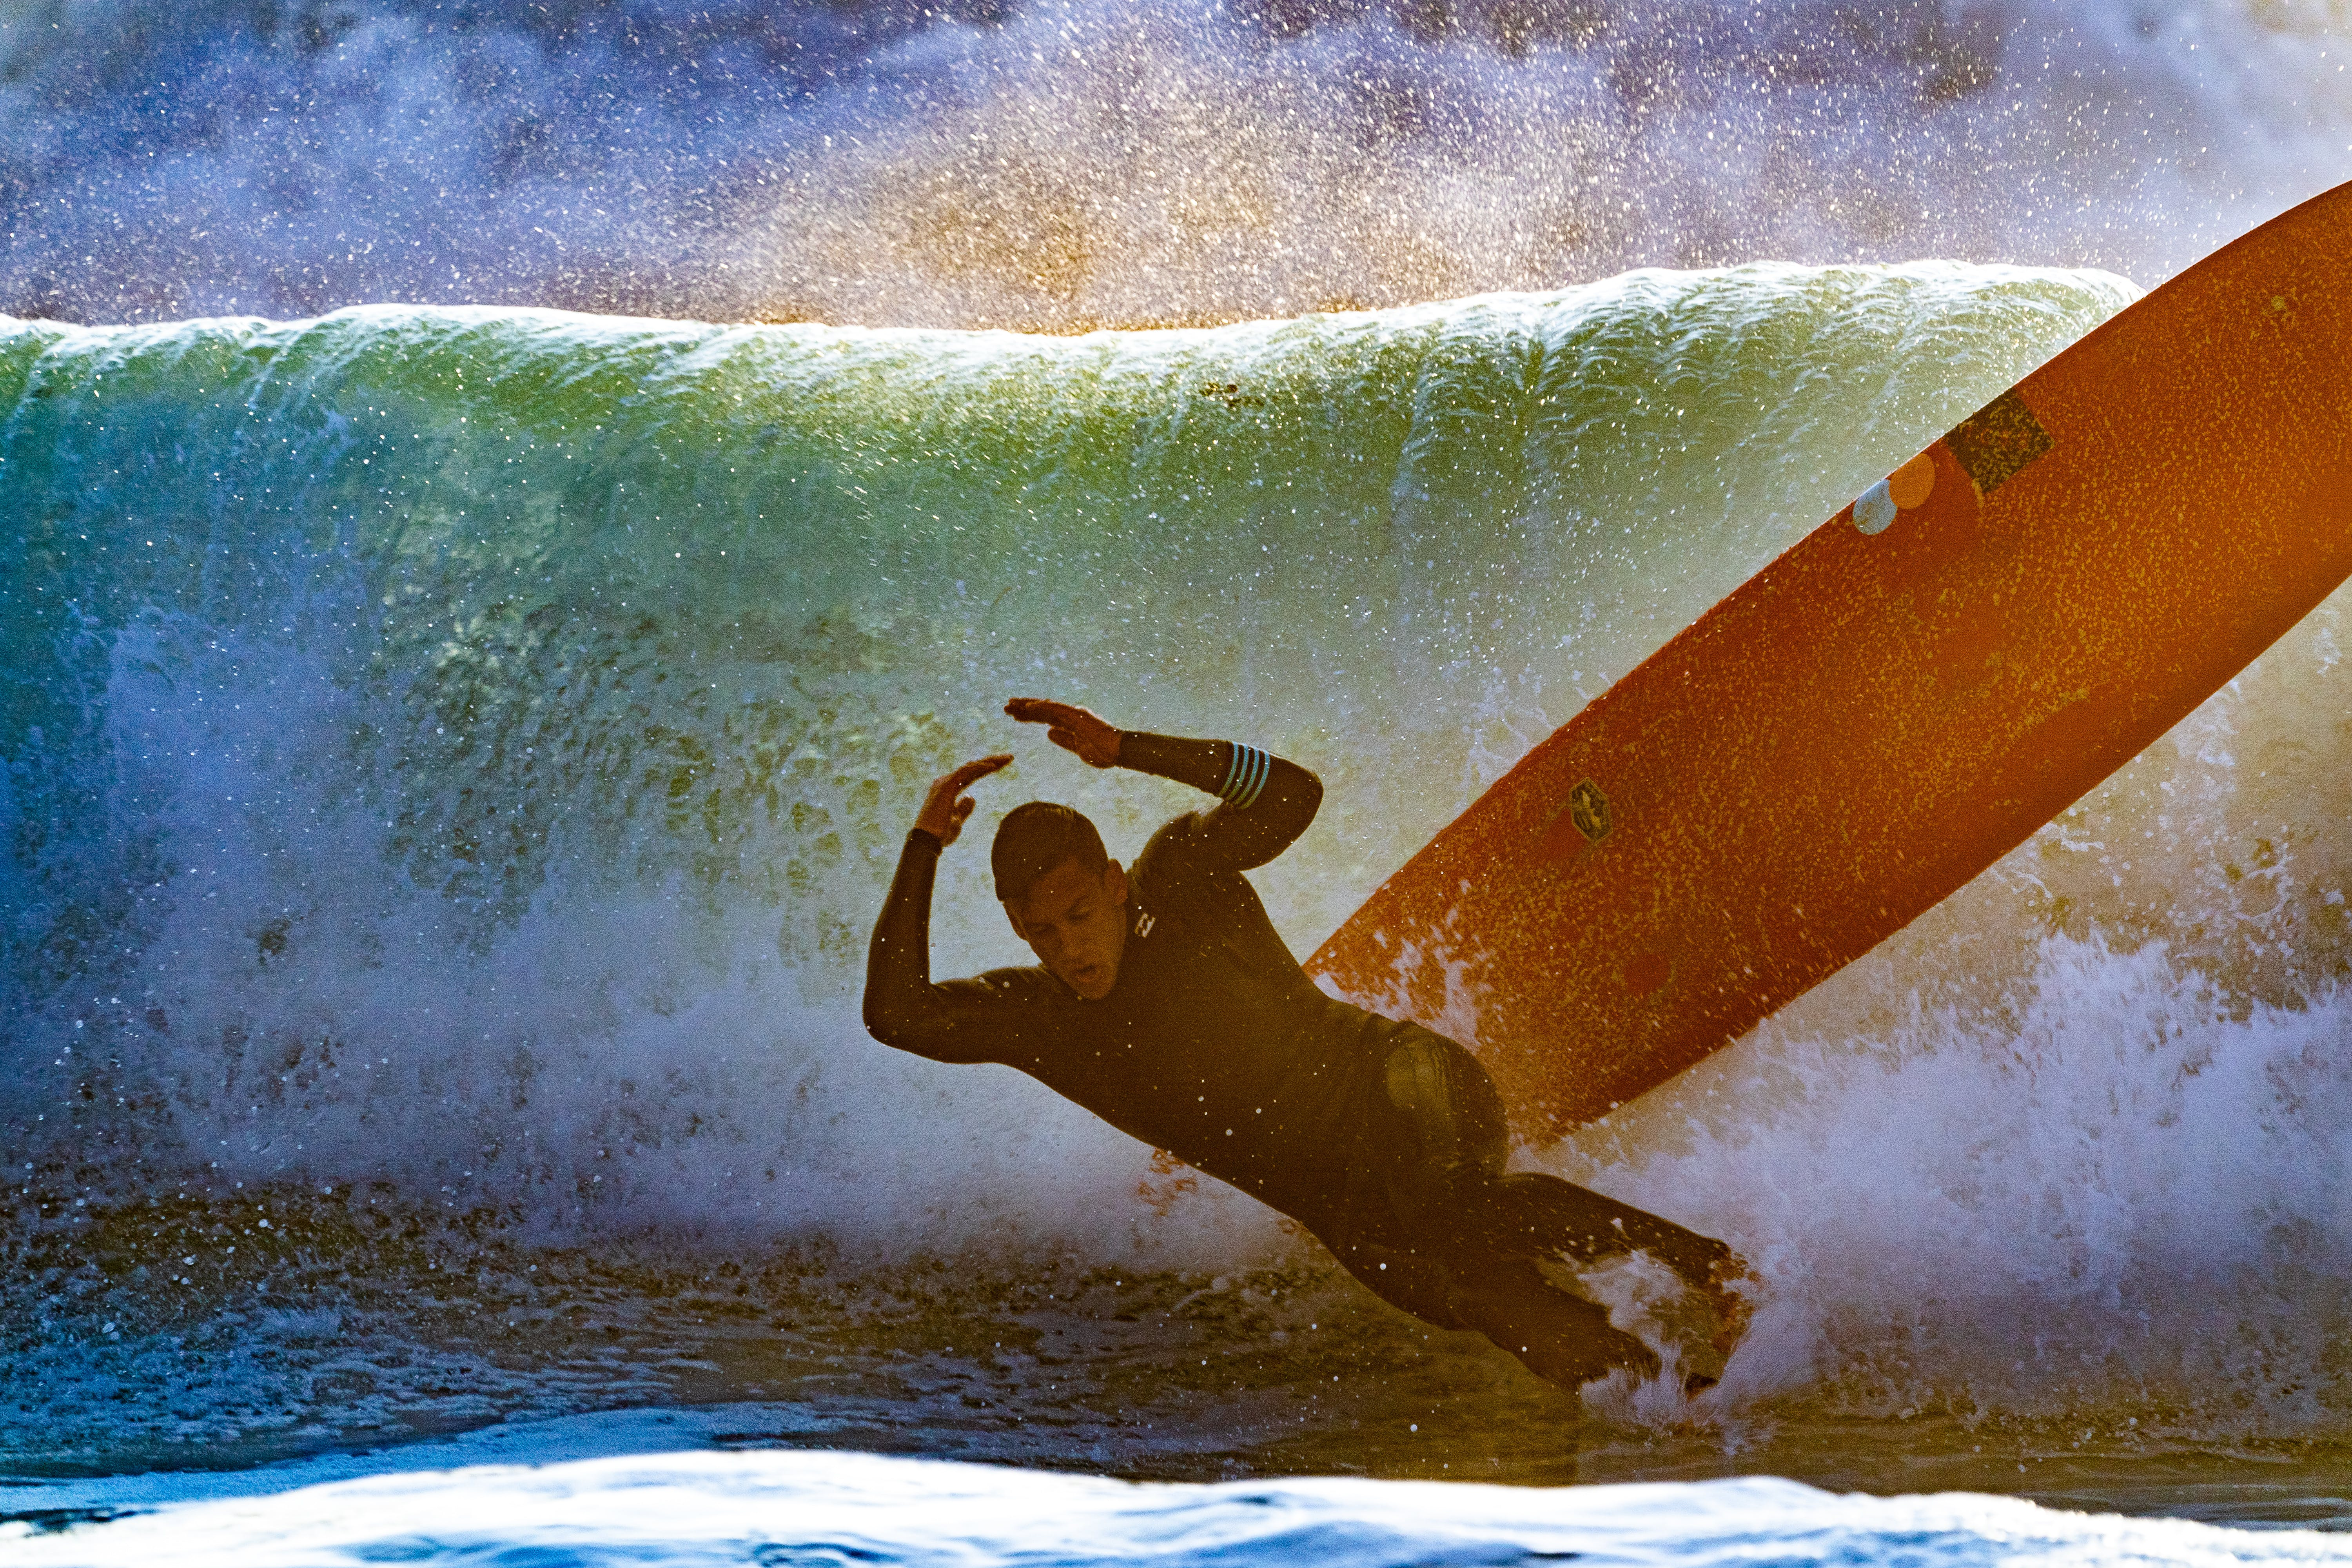 Man Wiping Out of Surfboard